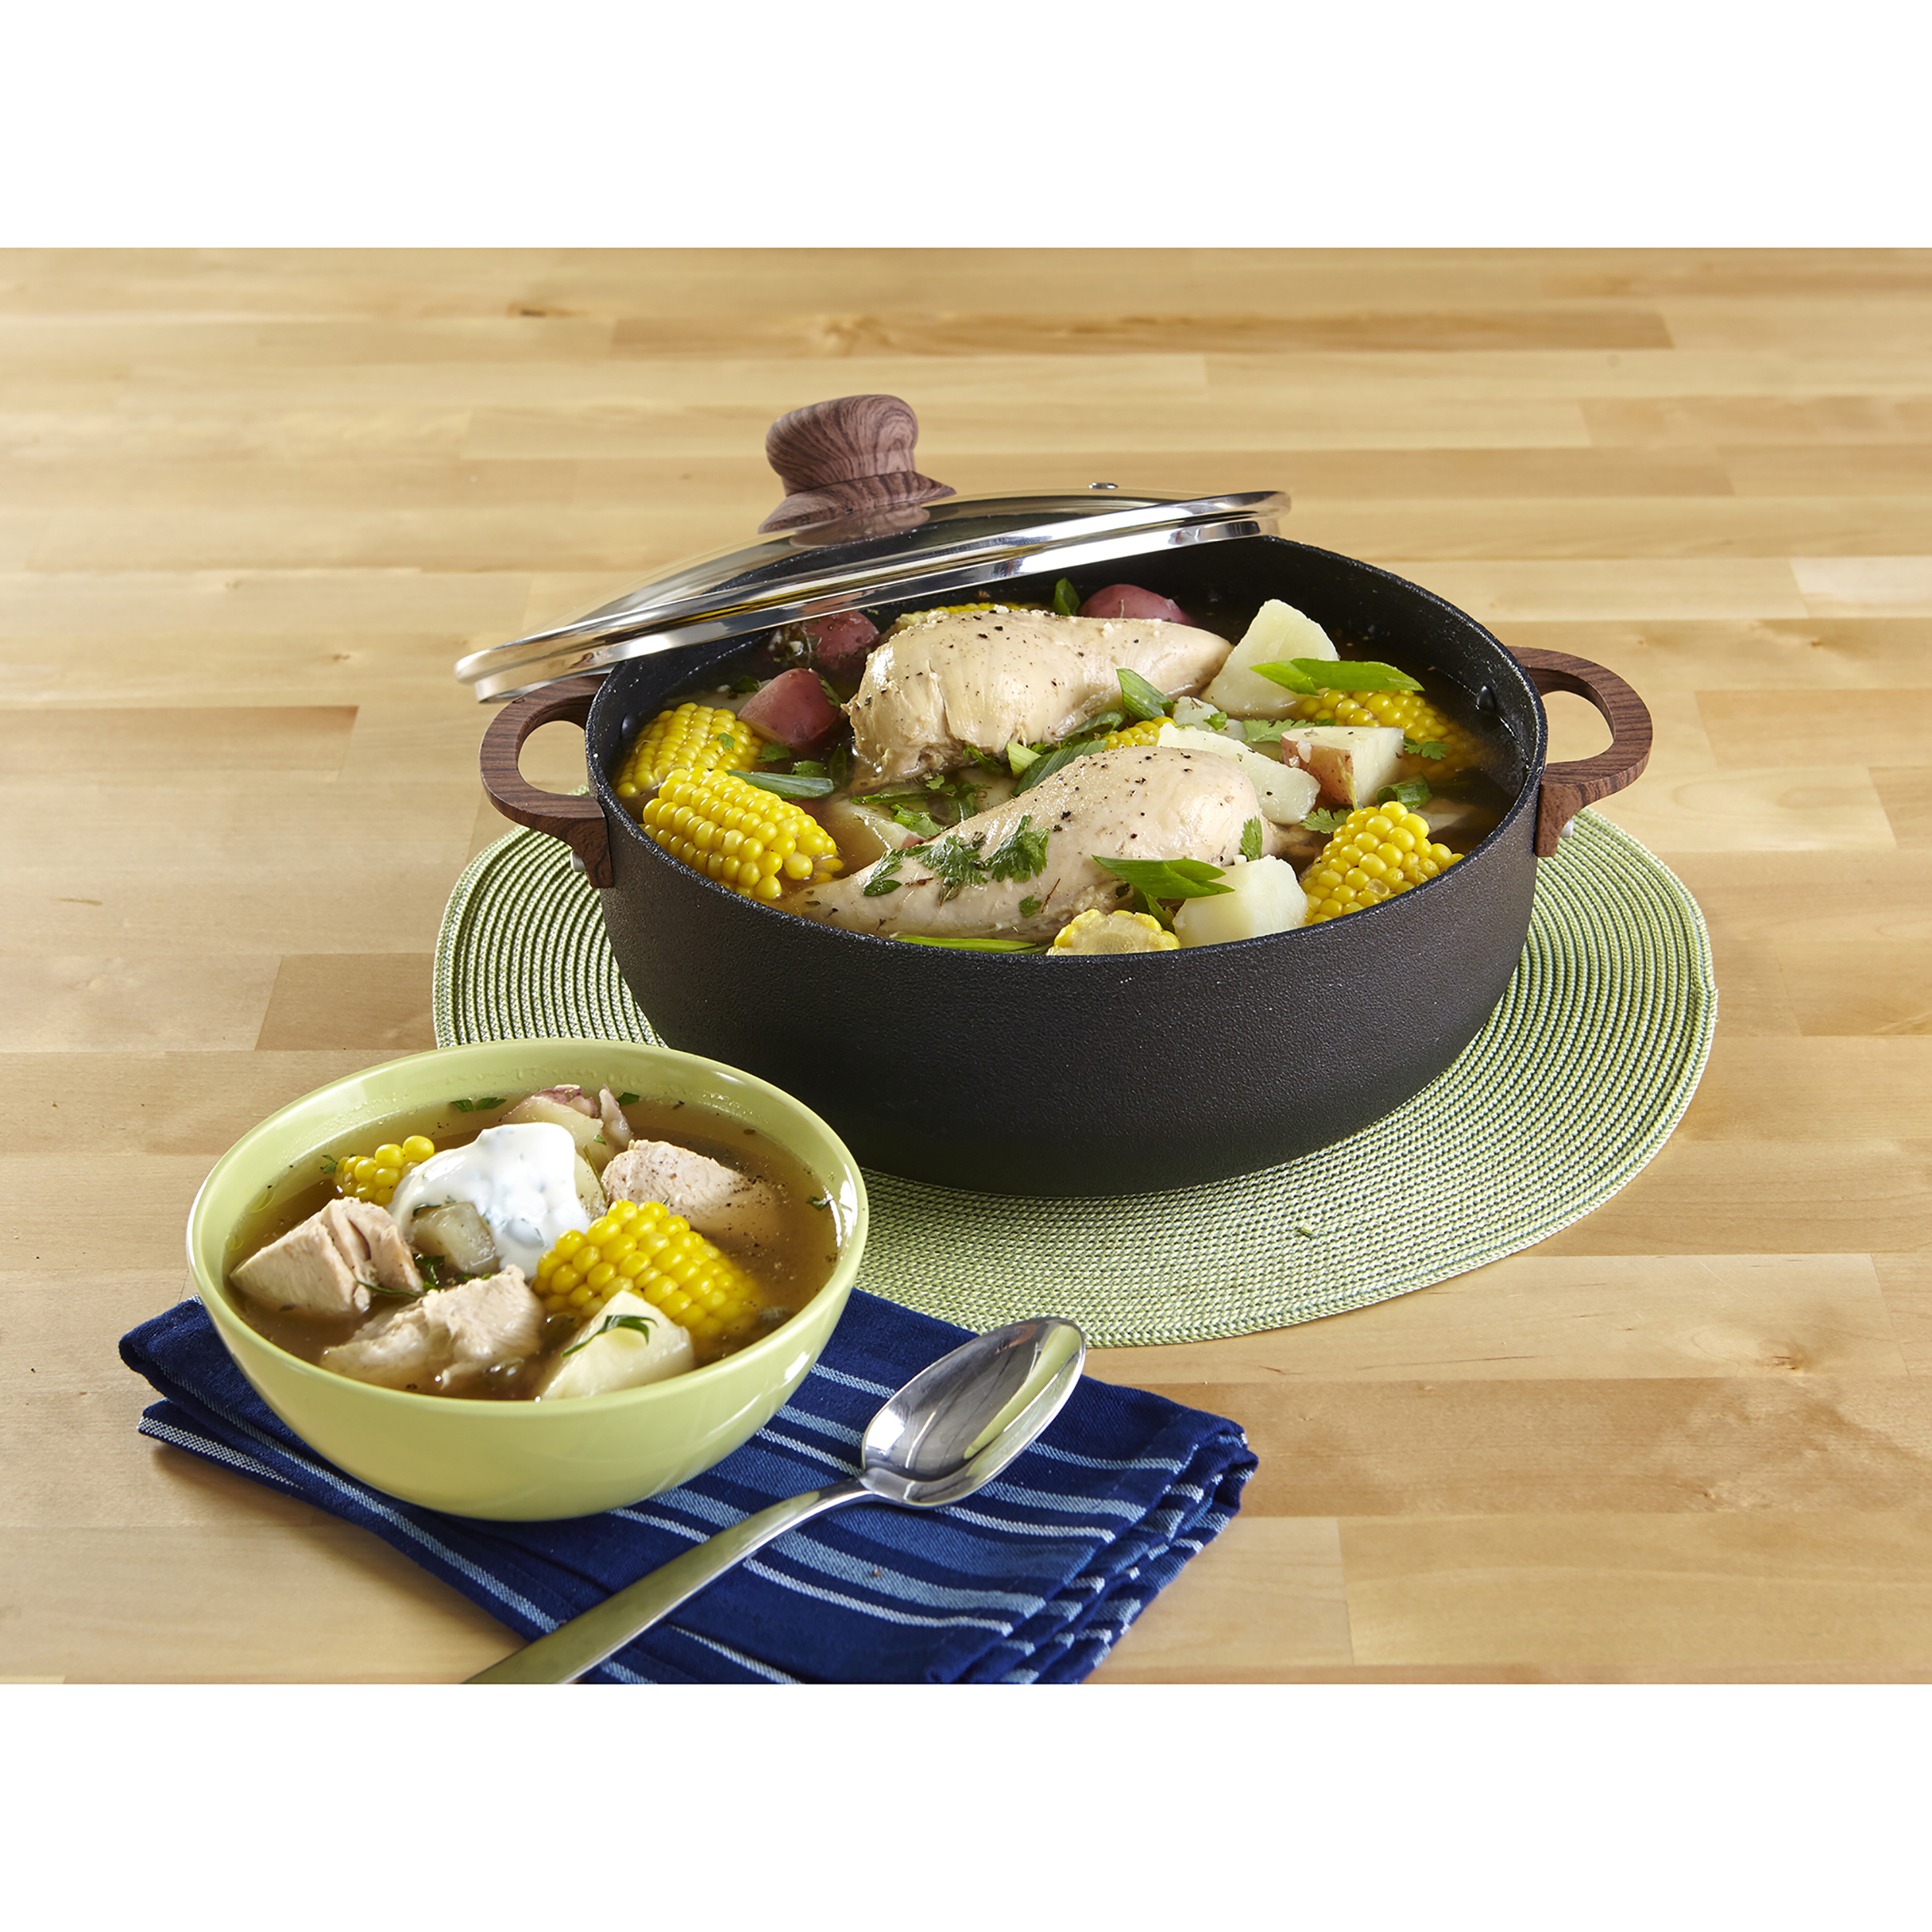 IMUSA Nonstick Spleckled Black Stone Caldero with Tempered Glass Lid and Woodlook Soft Touch Handles 6.9 Quart, Black